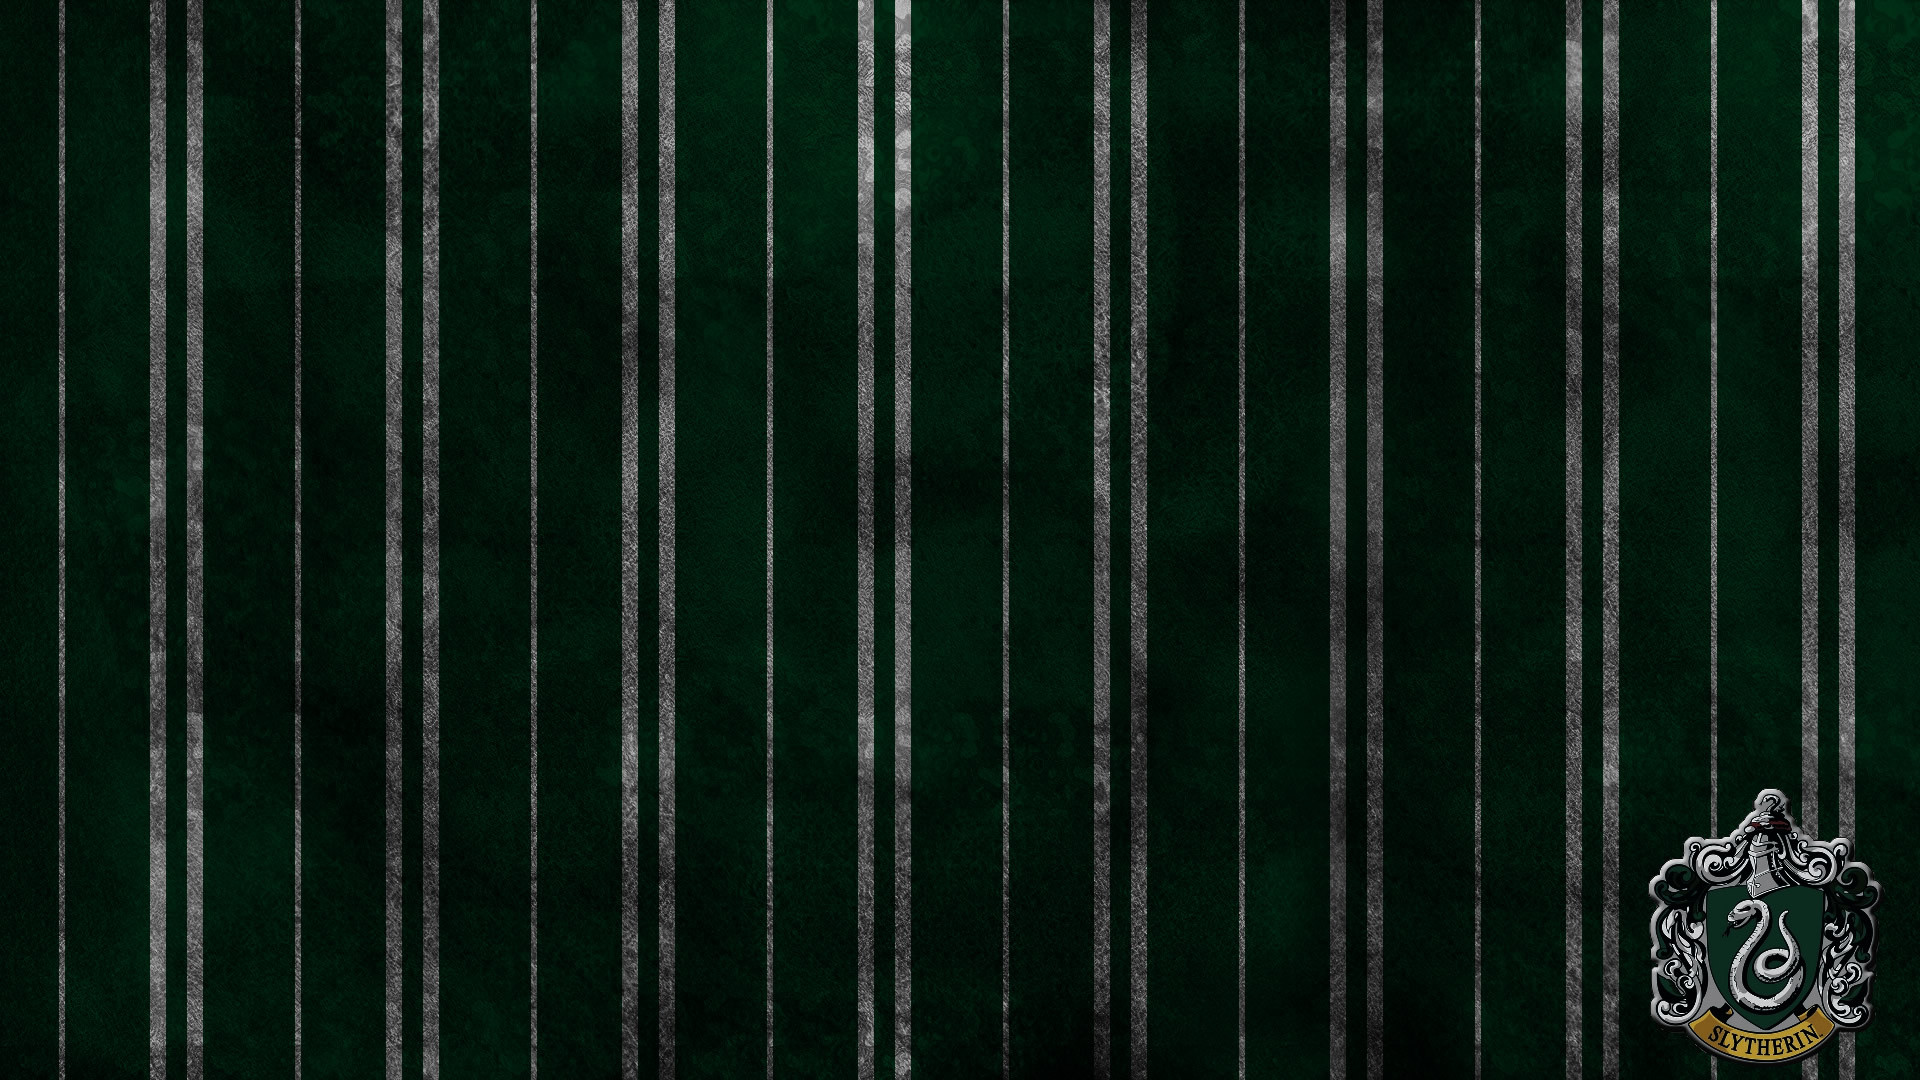 slytherin wallpapers hd stay   staywallpaper